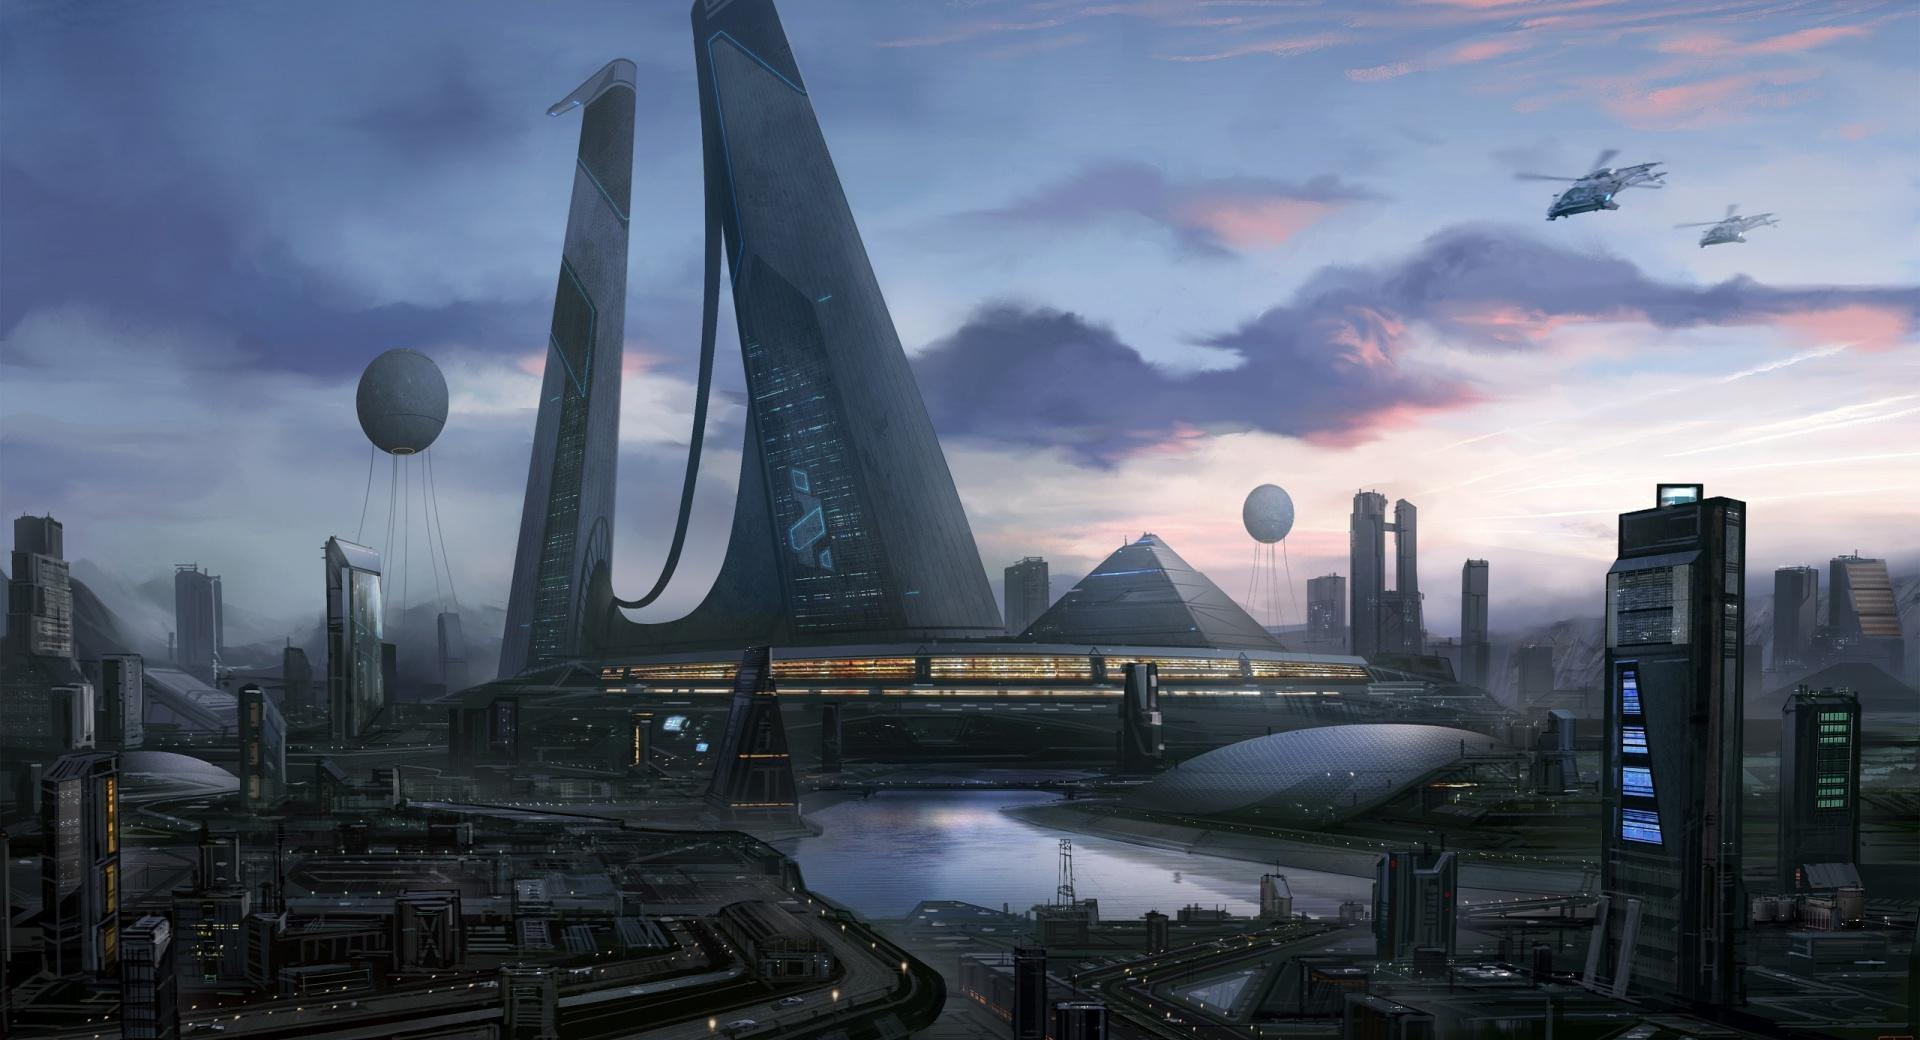 Futuristic City Art wallpapers HD quality